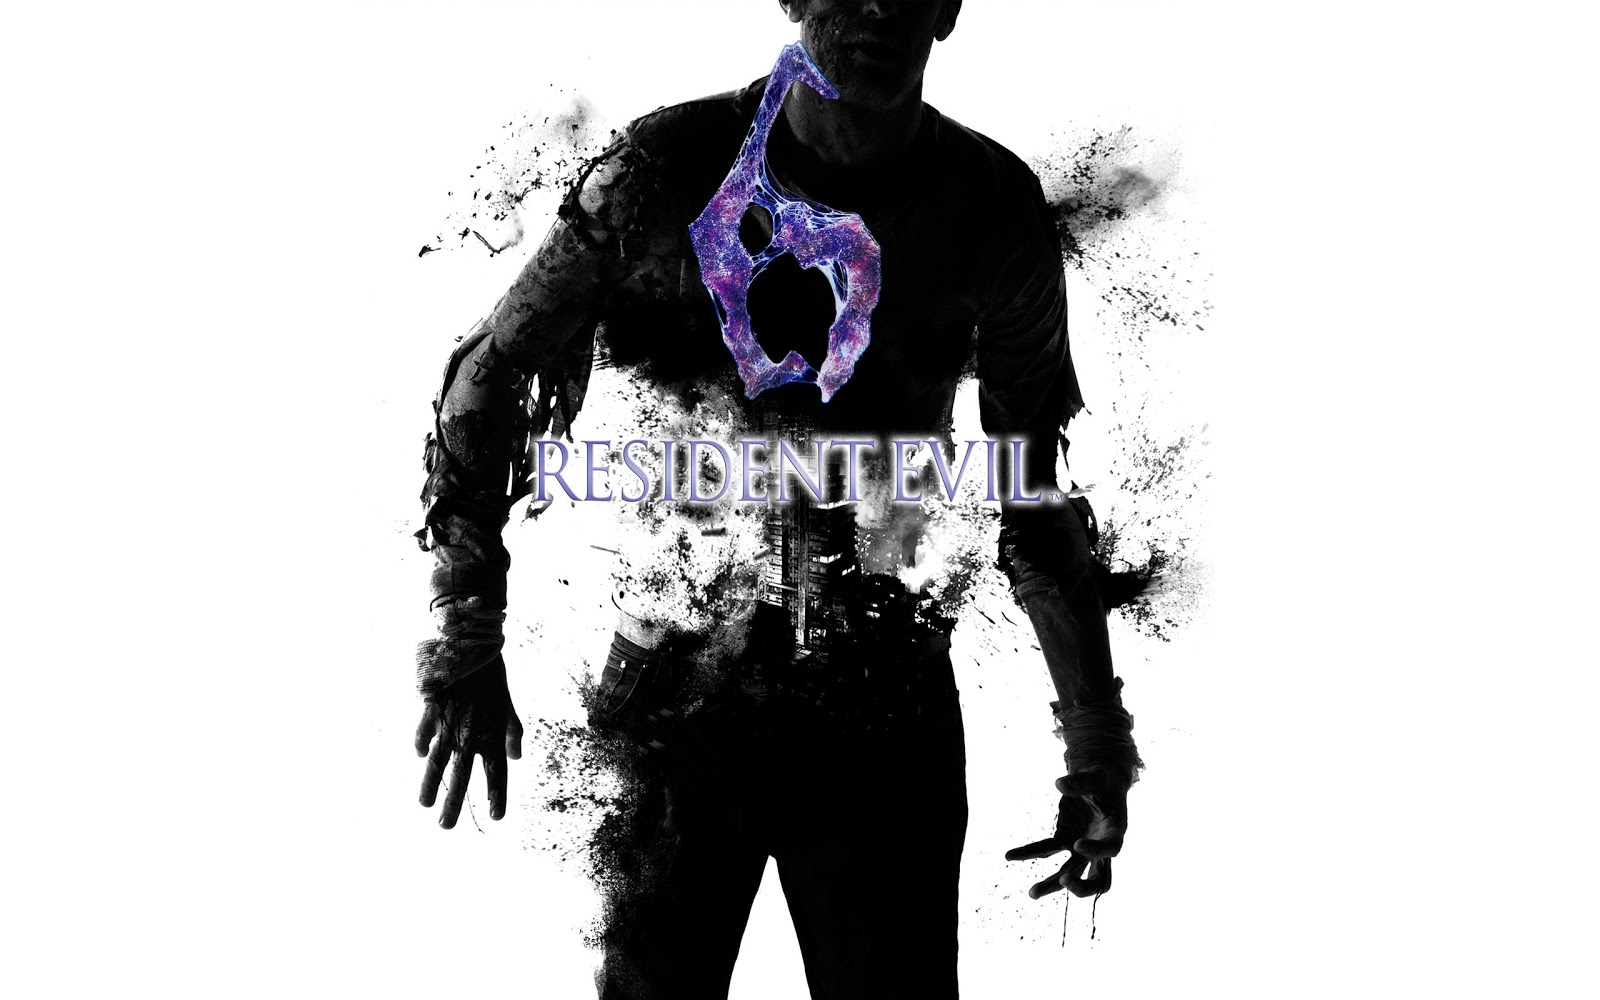 50 Resident Evil 6 Wallpaper 1080p On Wallpapersafari